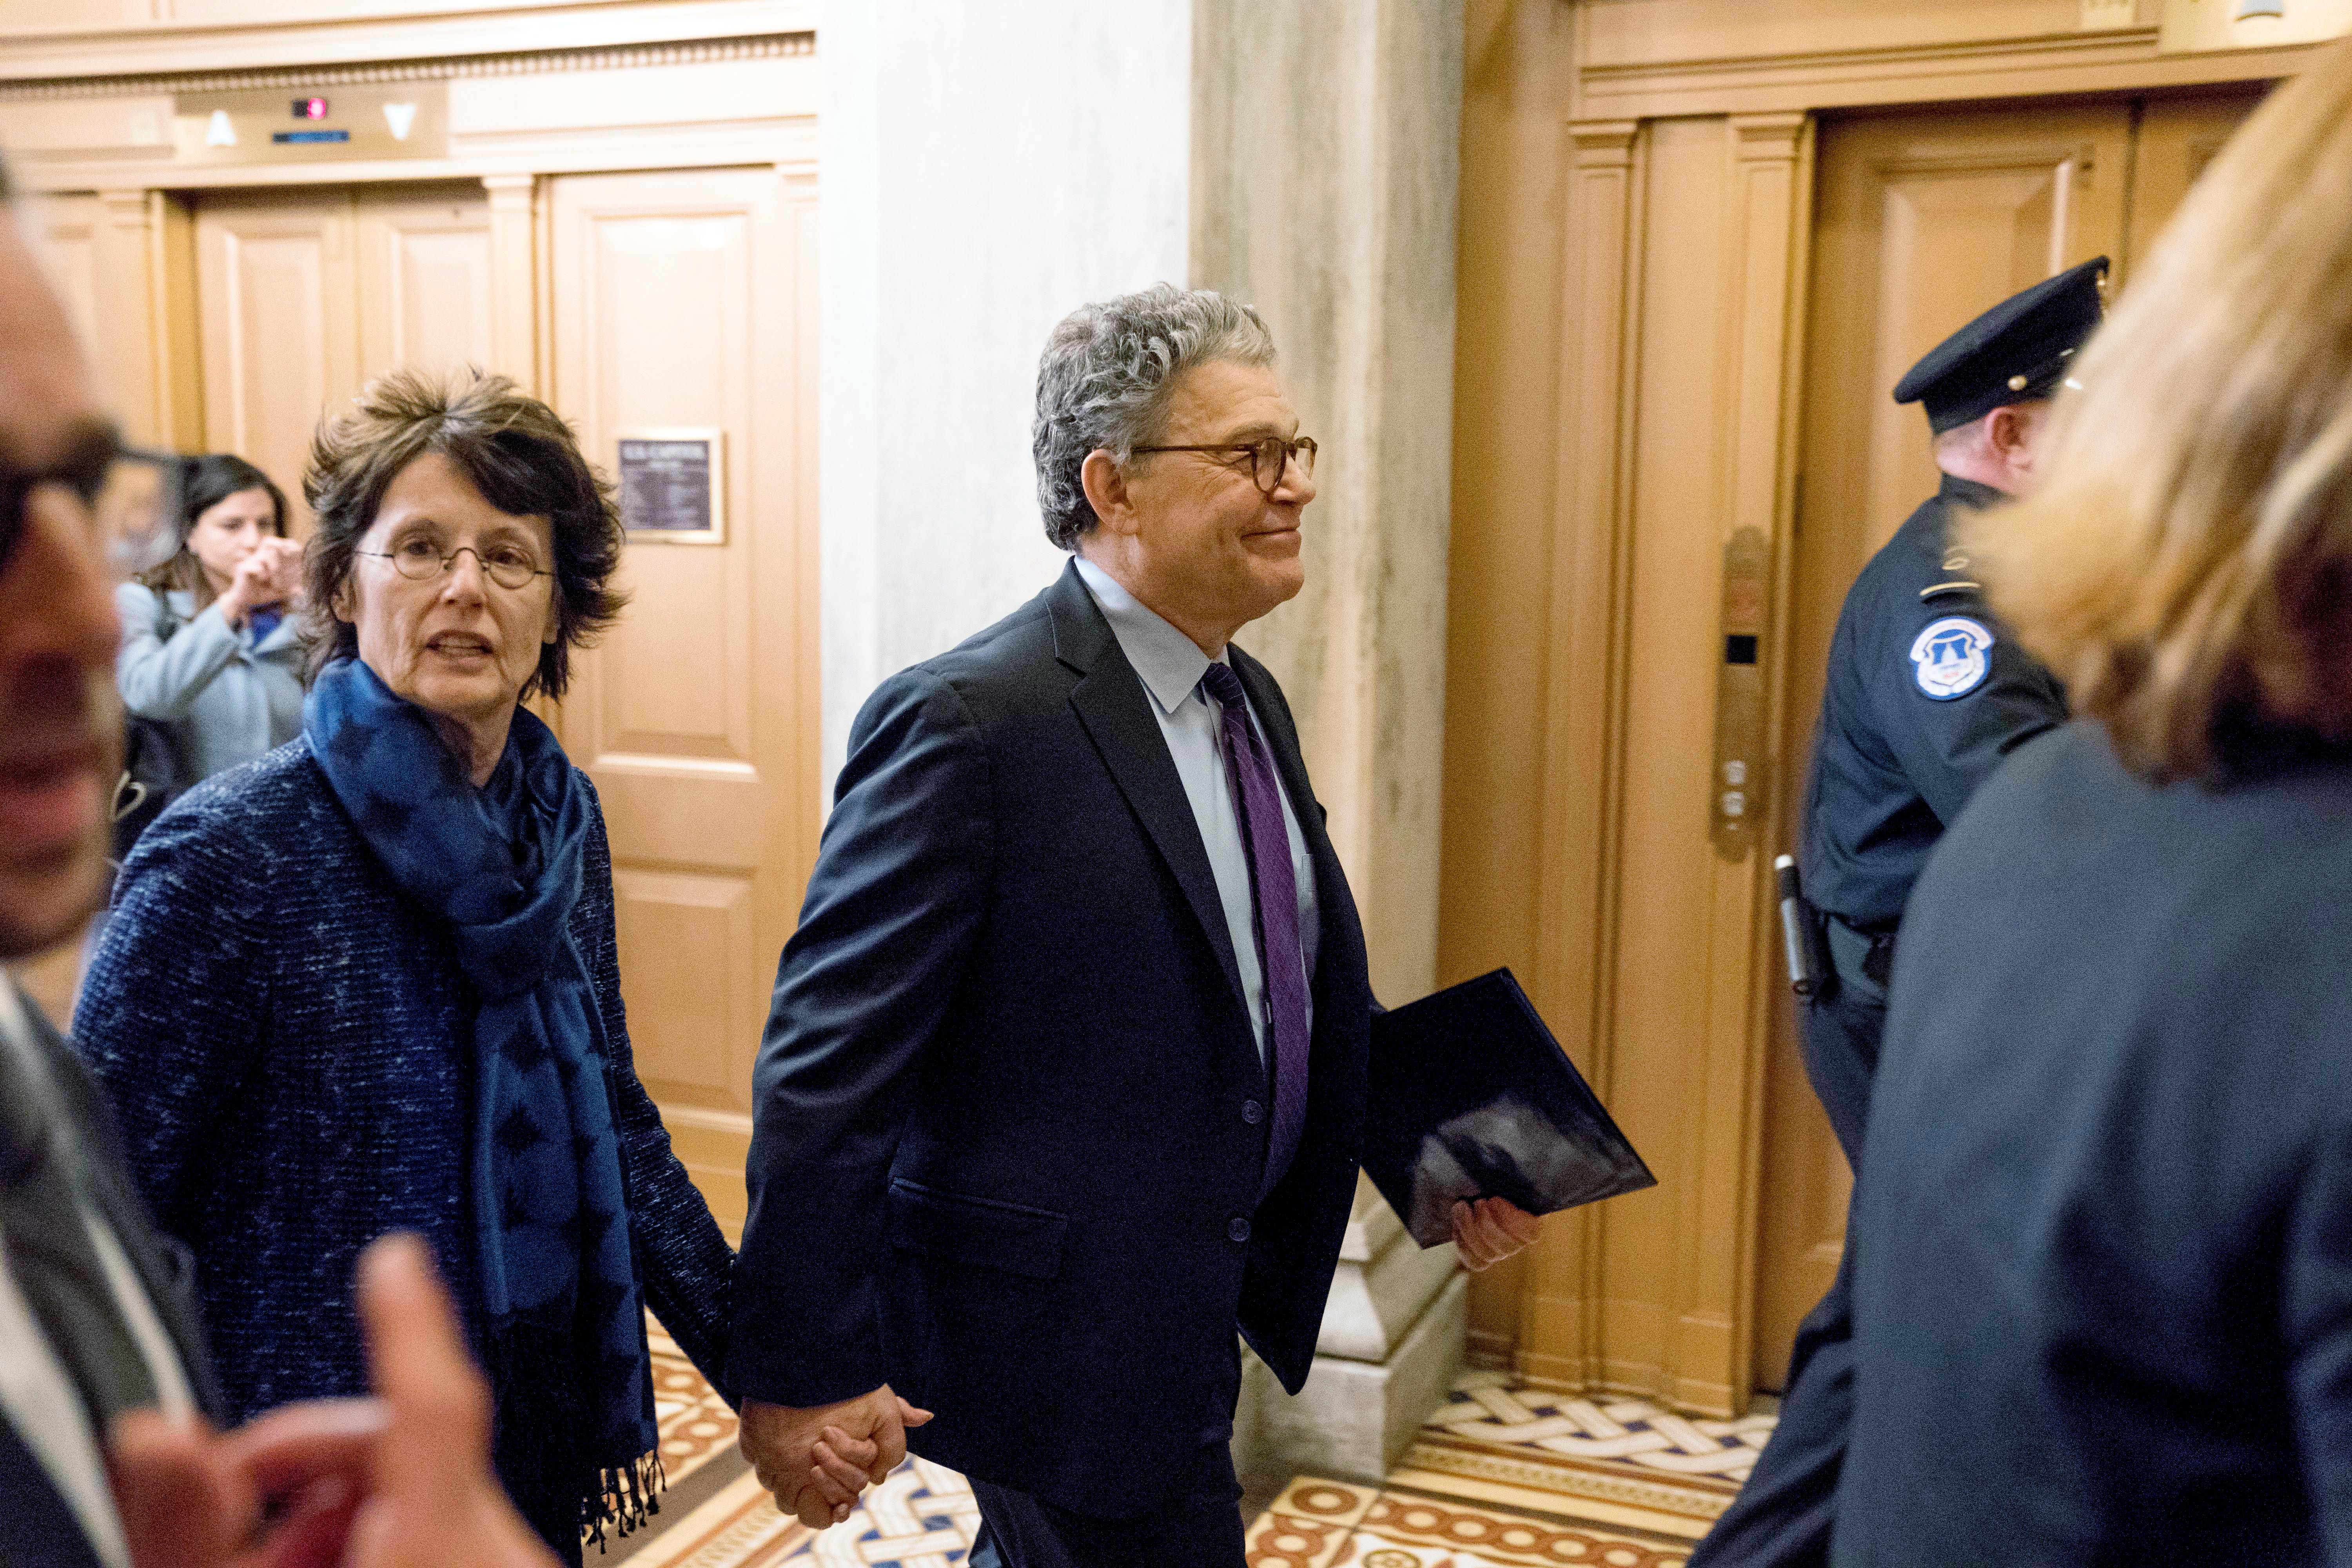 Sen. Al Franken, D-Minn., arrives with his wife Franni Bryson, left, on Capitol Hill in Washington, Thursday morning, Dec. 7, 2017. . (AP Photo/Andrew Harnik)